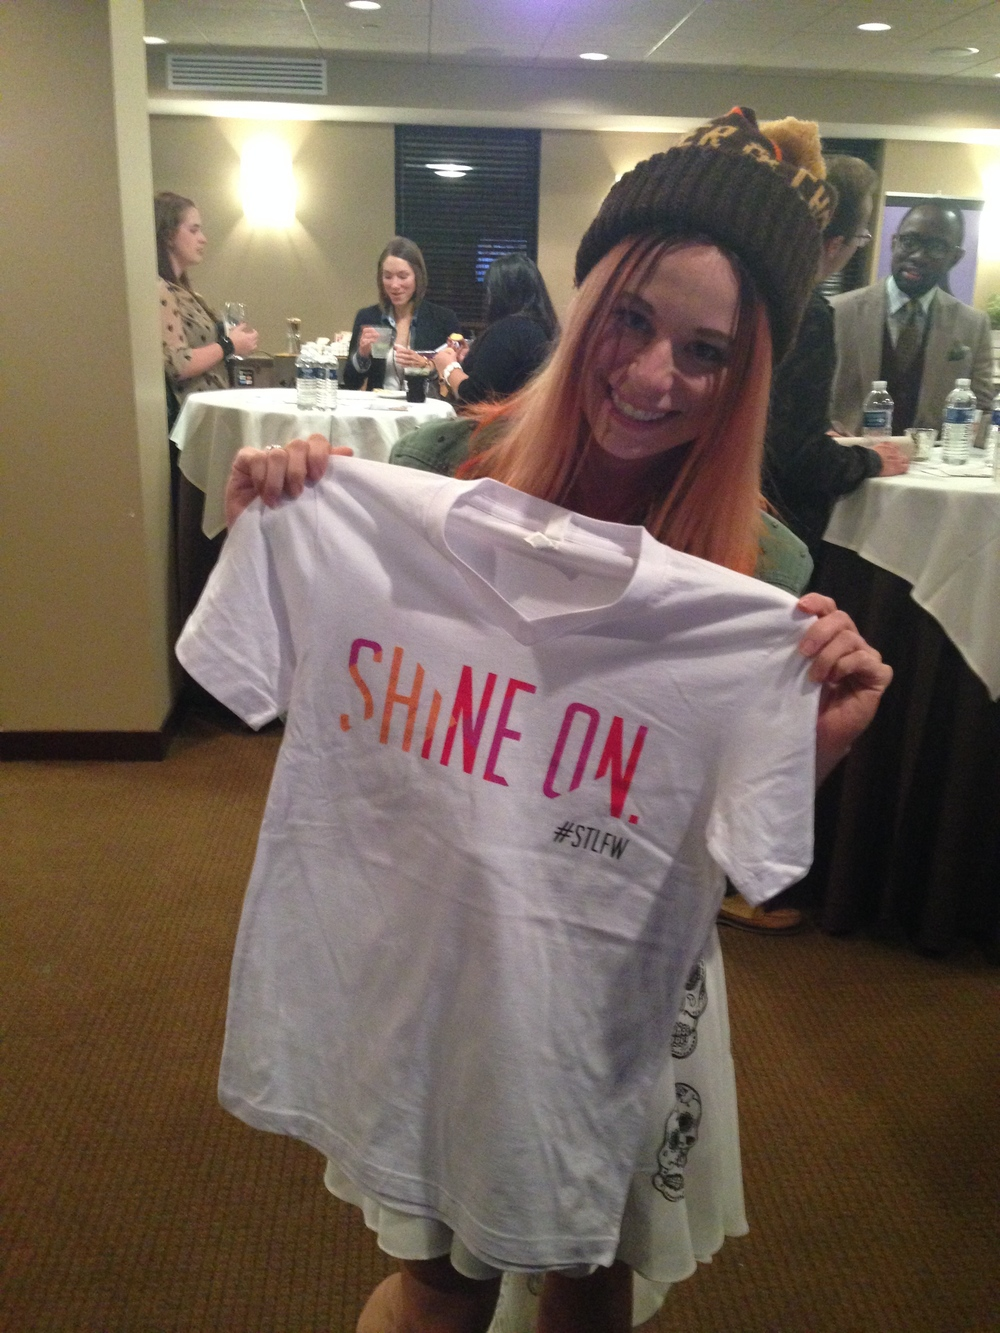 After checking in, I headed over to get my goodie bag and Shine On shirt at the #STLFW table!